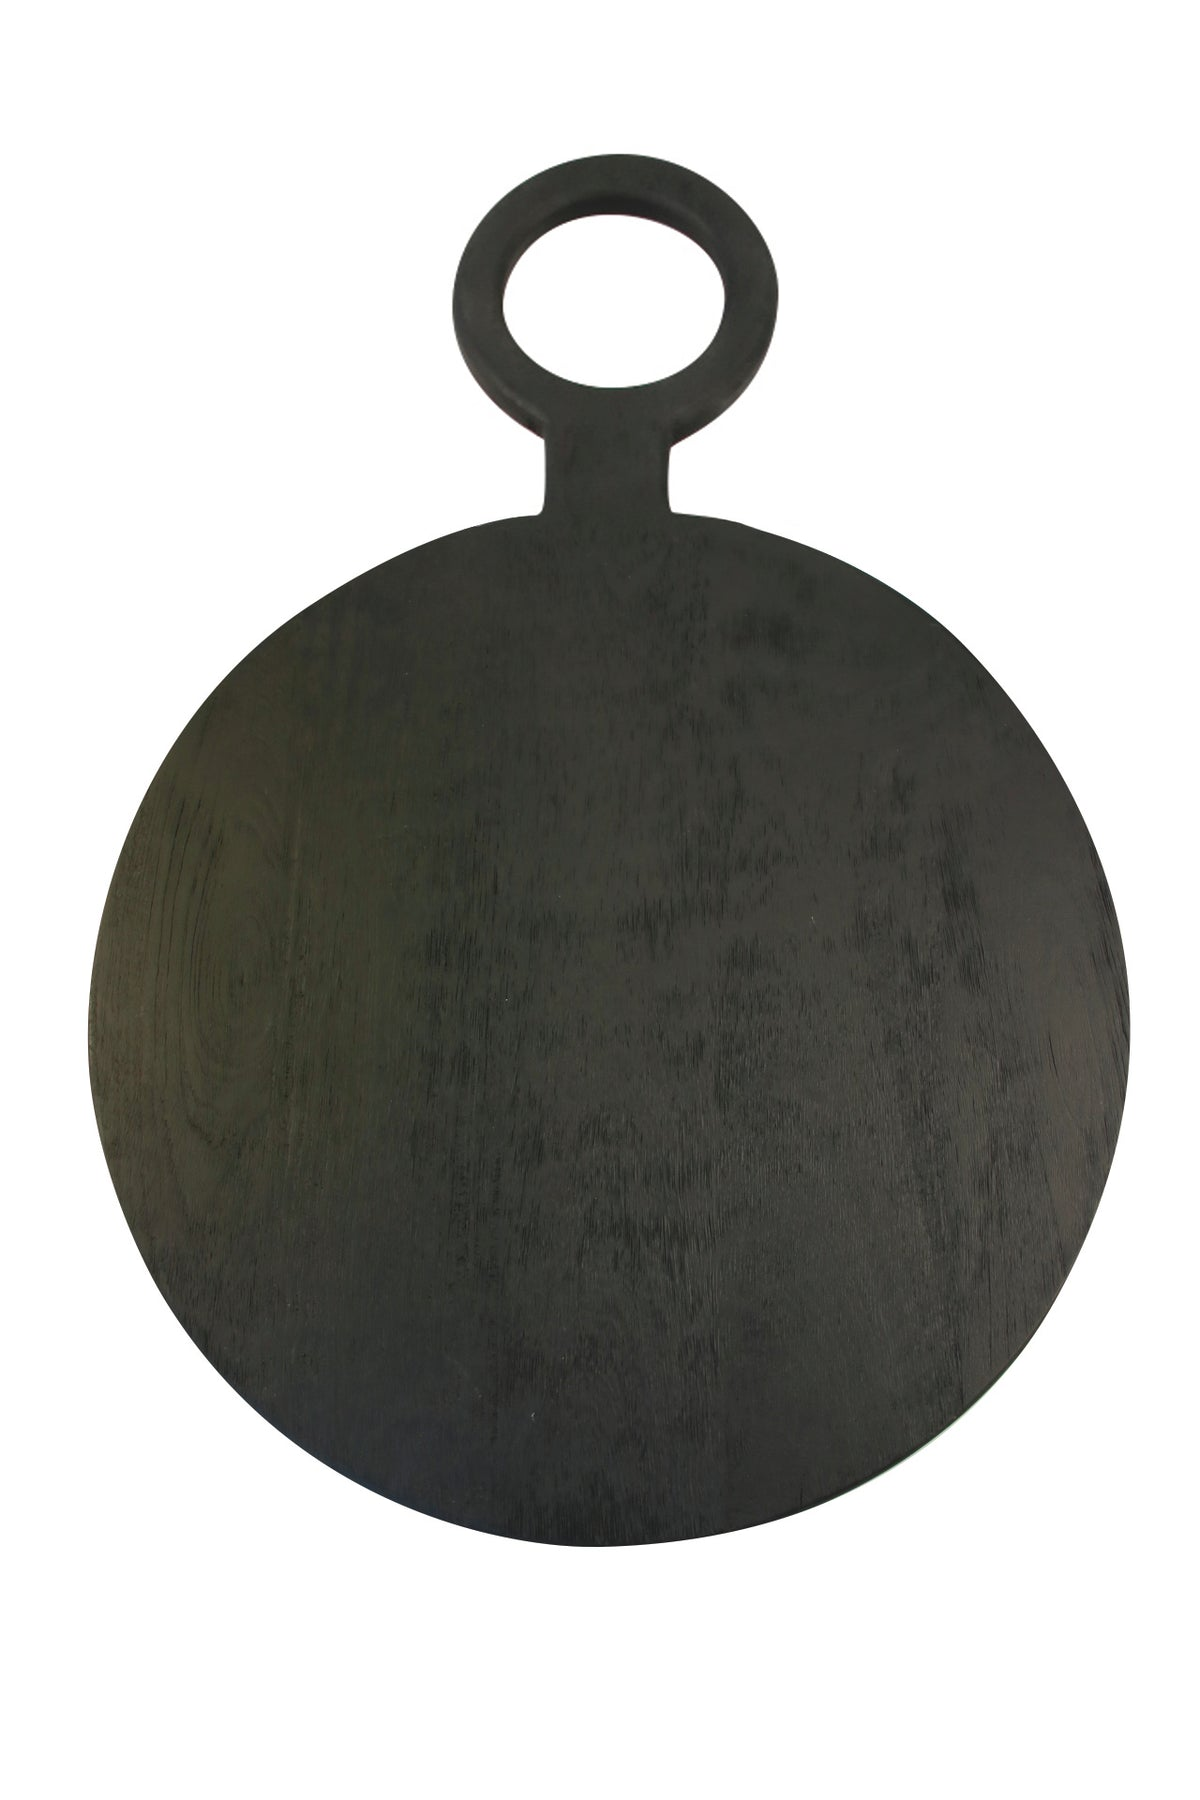 Black Mango Wood Round Board, Large